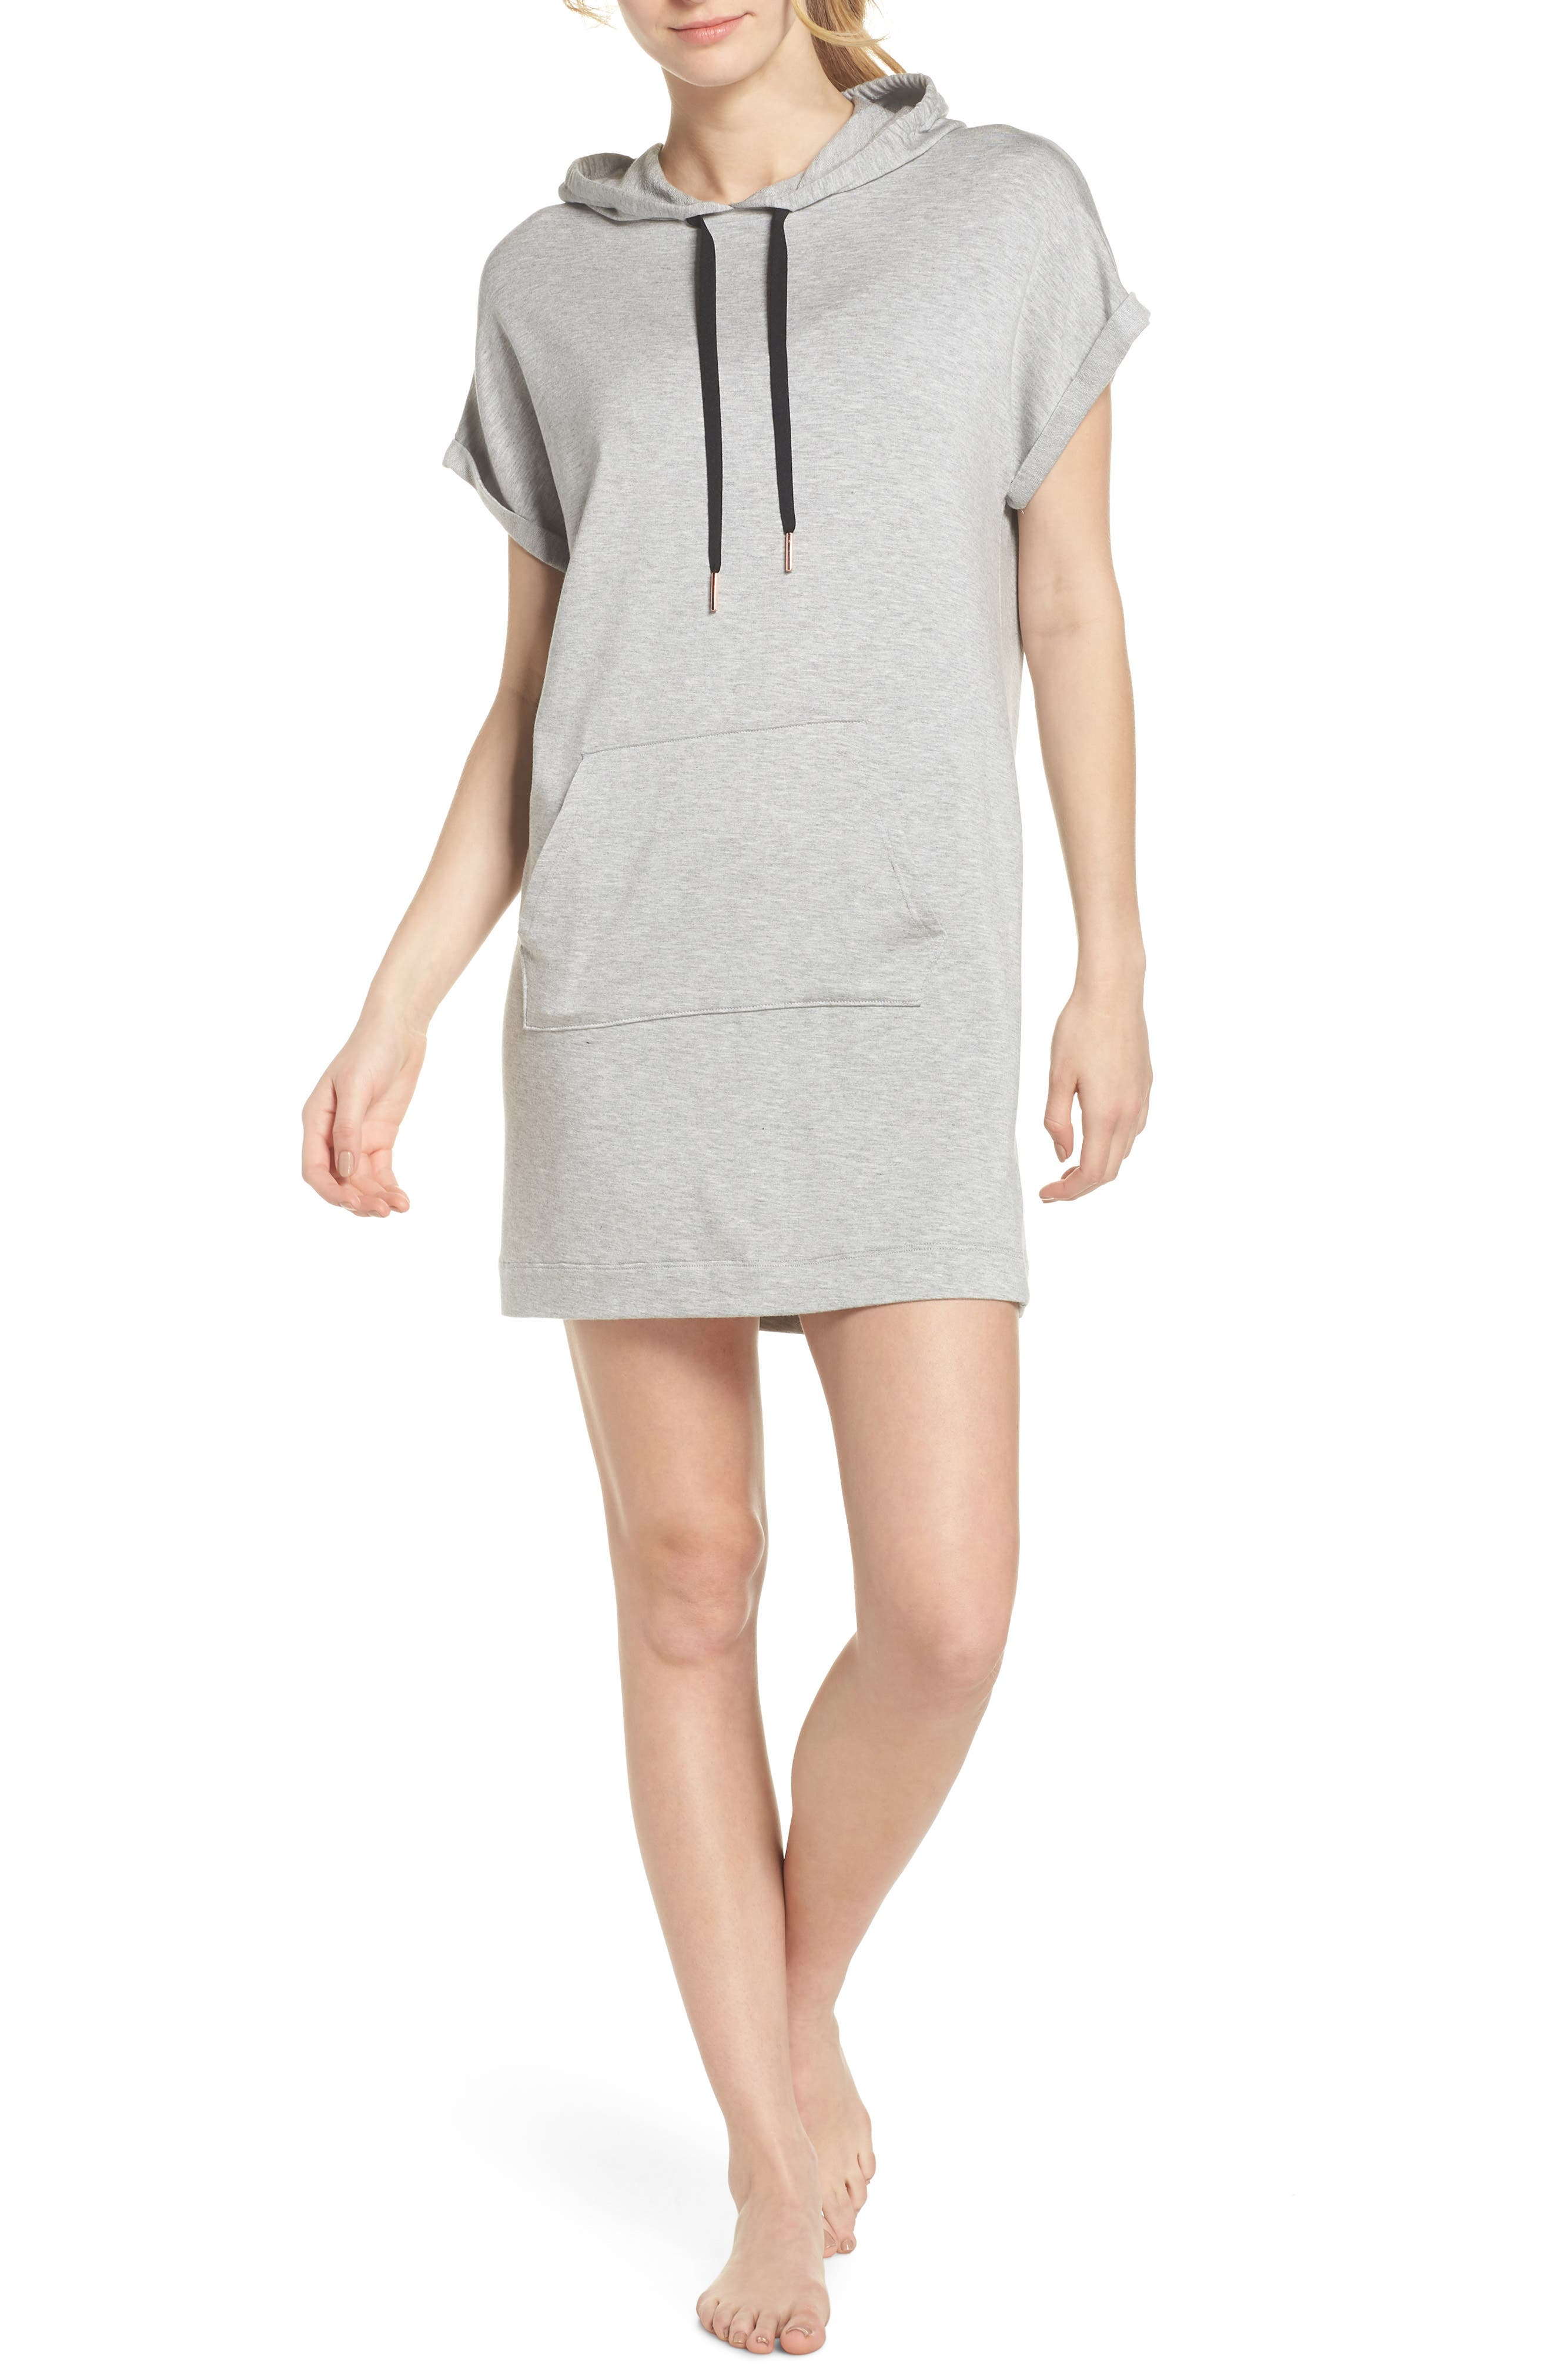 It's All Hoodie Hooded Sweatshirt Dress,                             Main thumbnail 1, color,                             Light Heather Gray